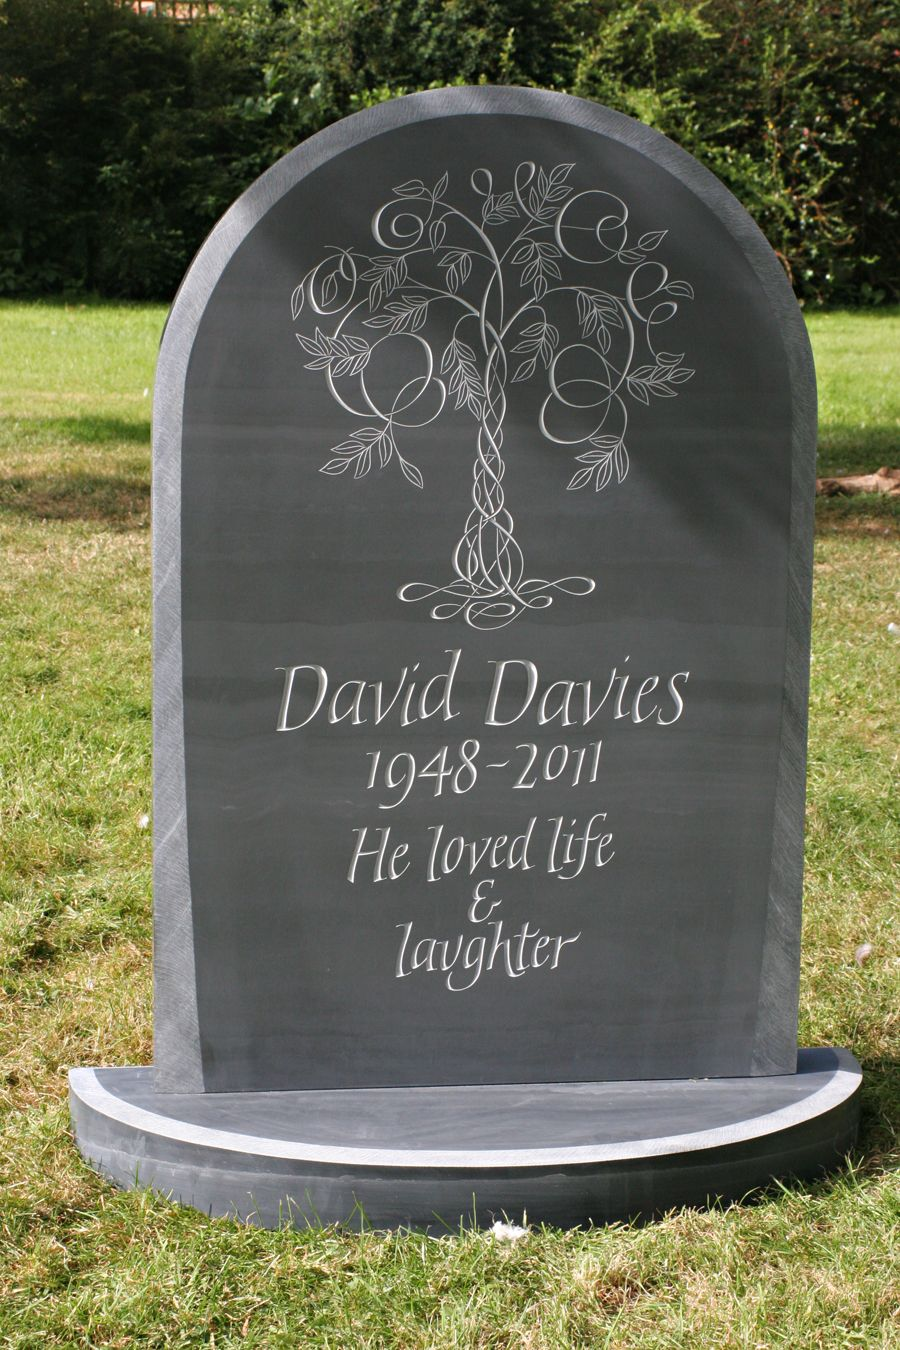 Pin by Jill Holt on my picks in 2019 | Grave headstones ...